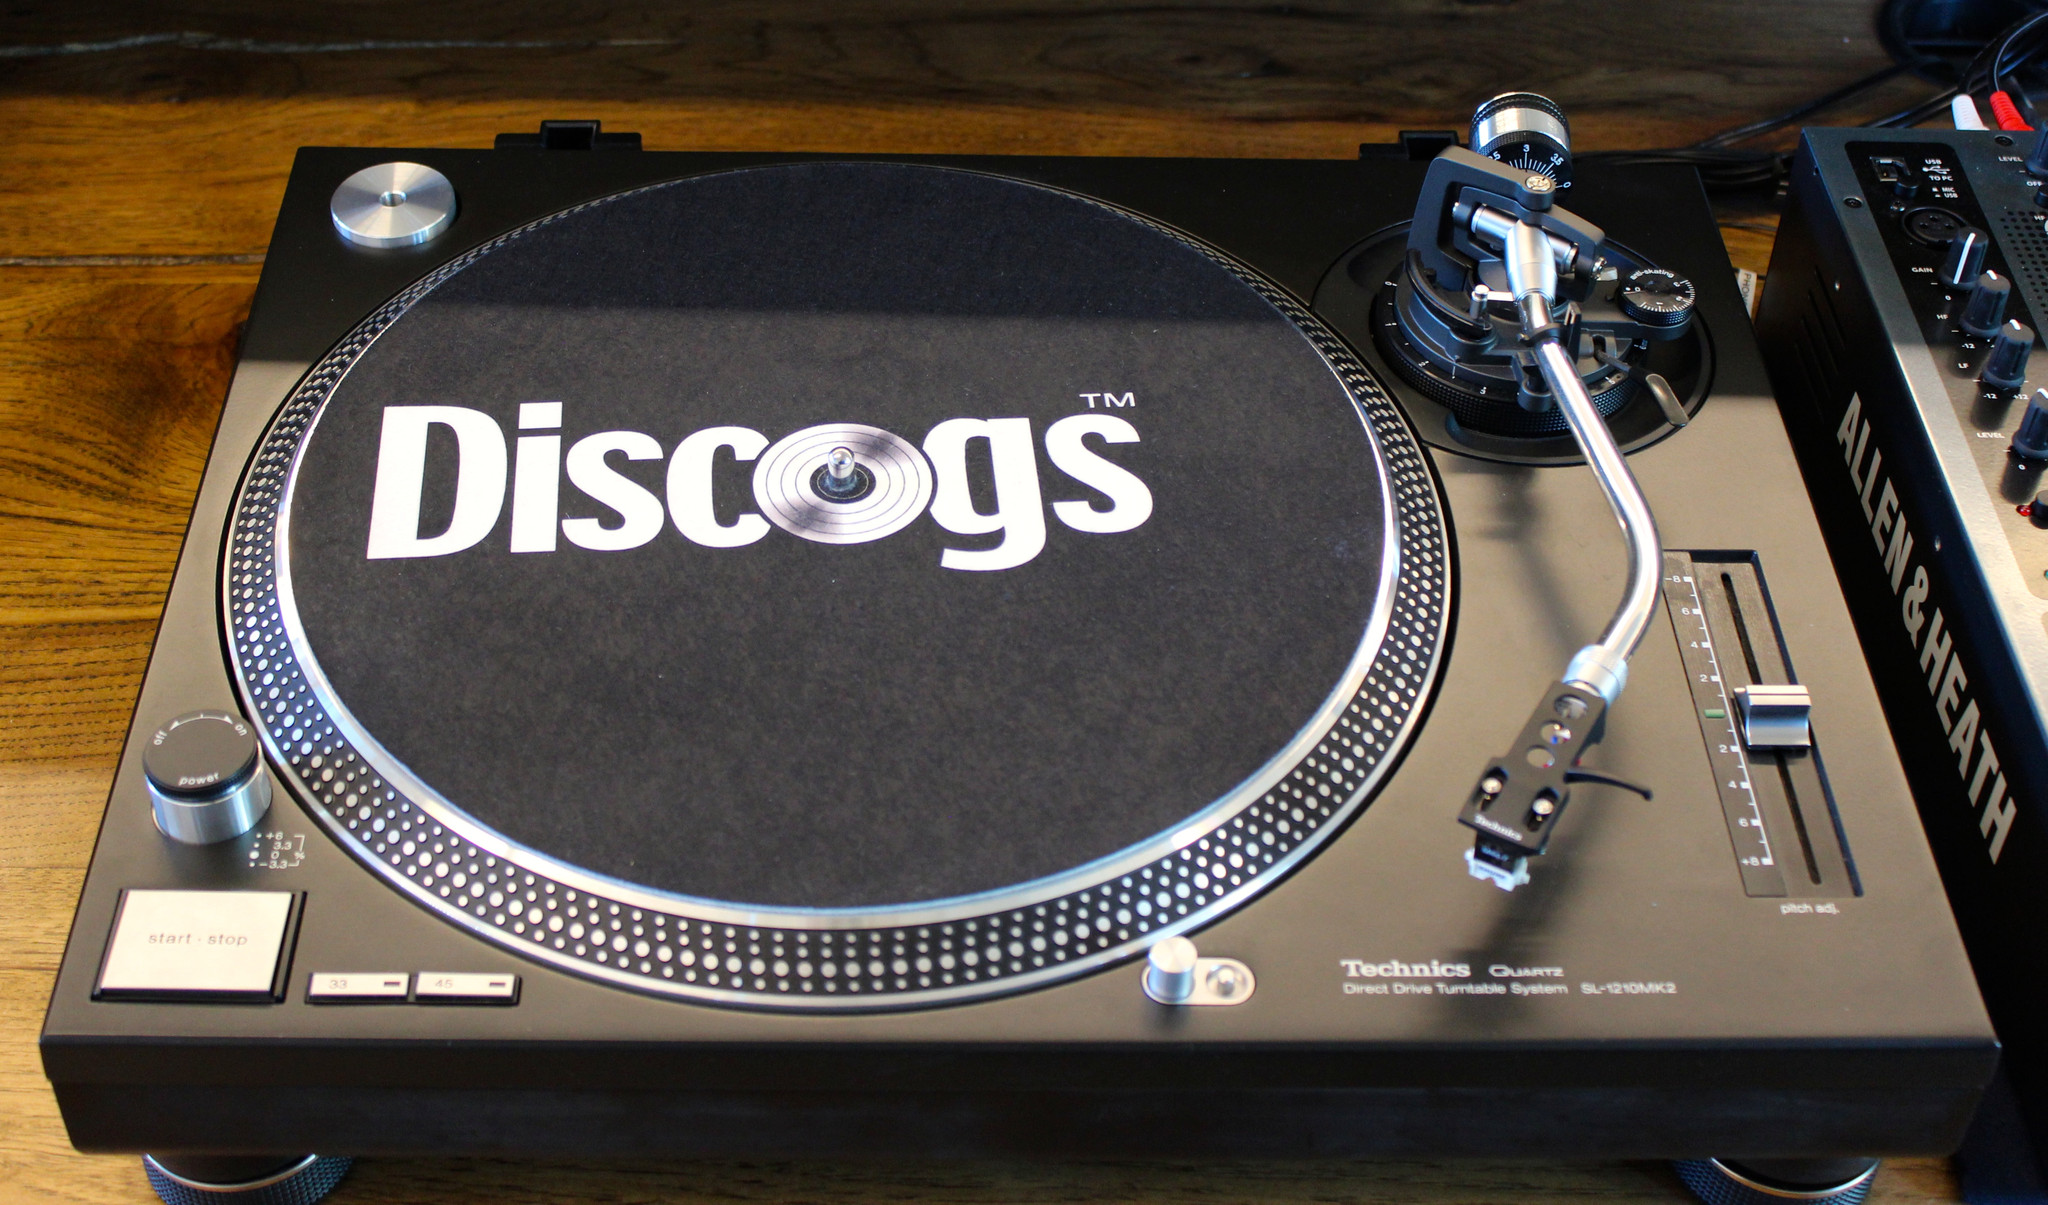 Discogs Relaunches Vinylhub Record Store Database 6am